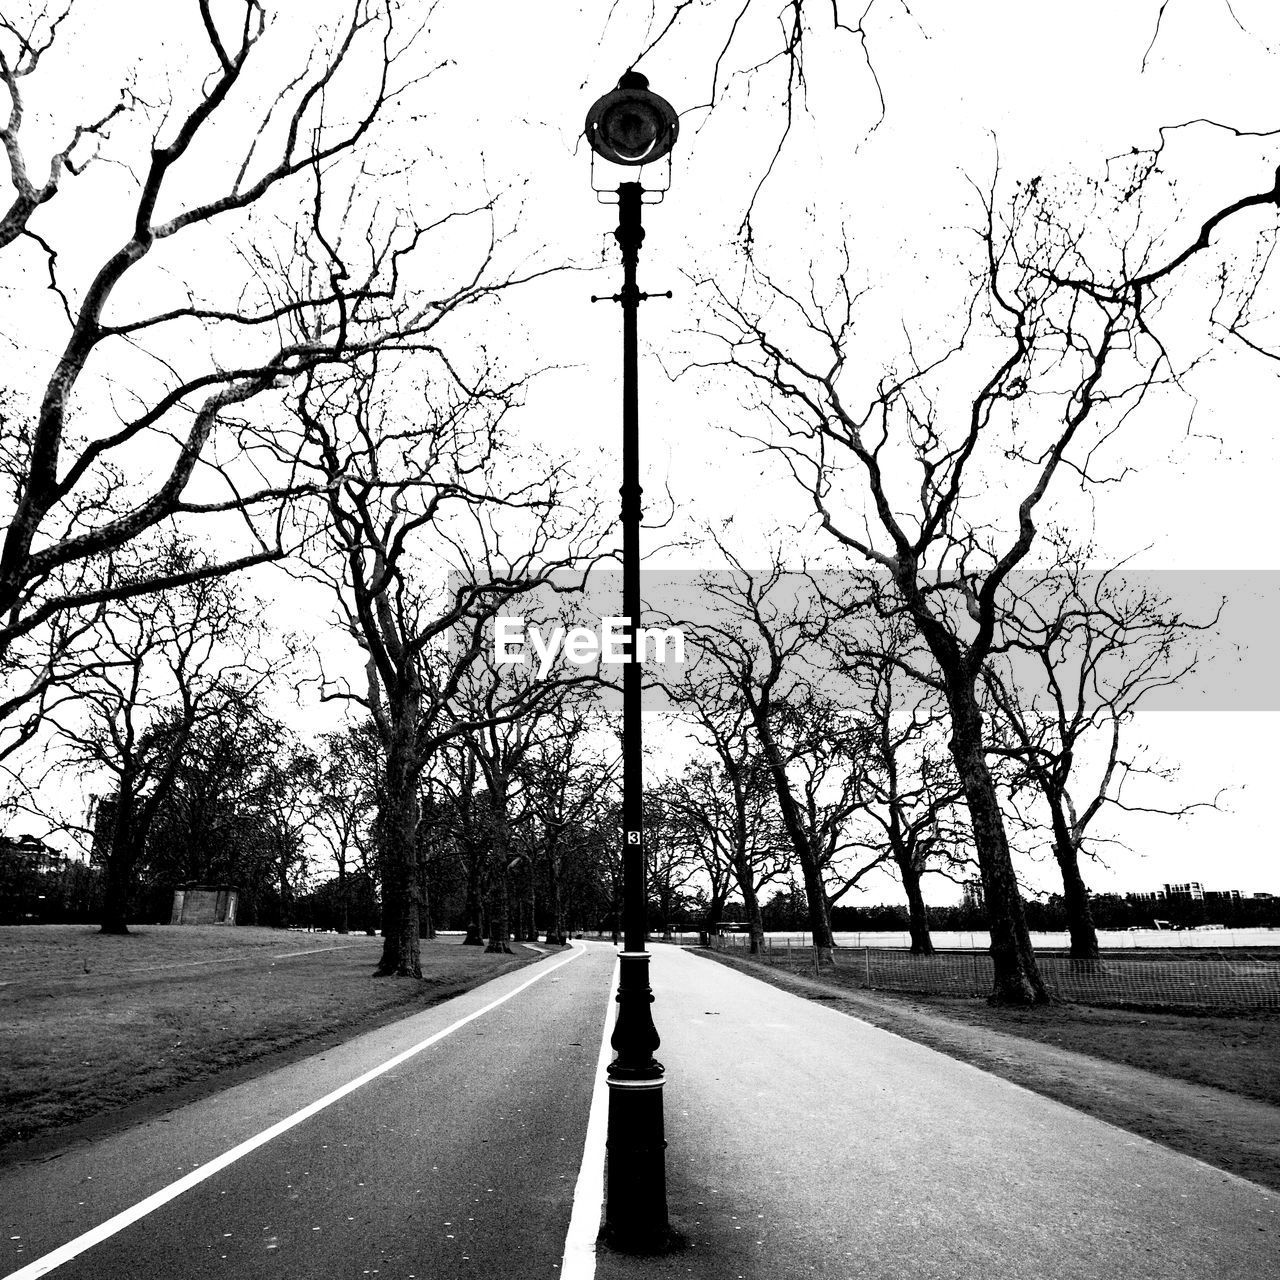 tree, bare tree, road, street, street light, plant, sky, transportation, no people, direction, nature, branch, the way forward, lighting equipment, city, day, tree trunk, outdoors, trunk, symbol, diminishing perspective